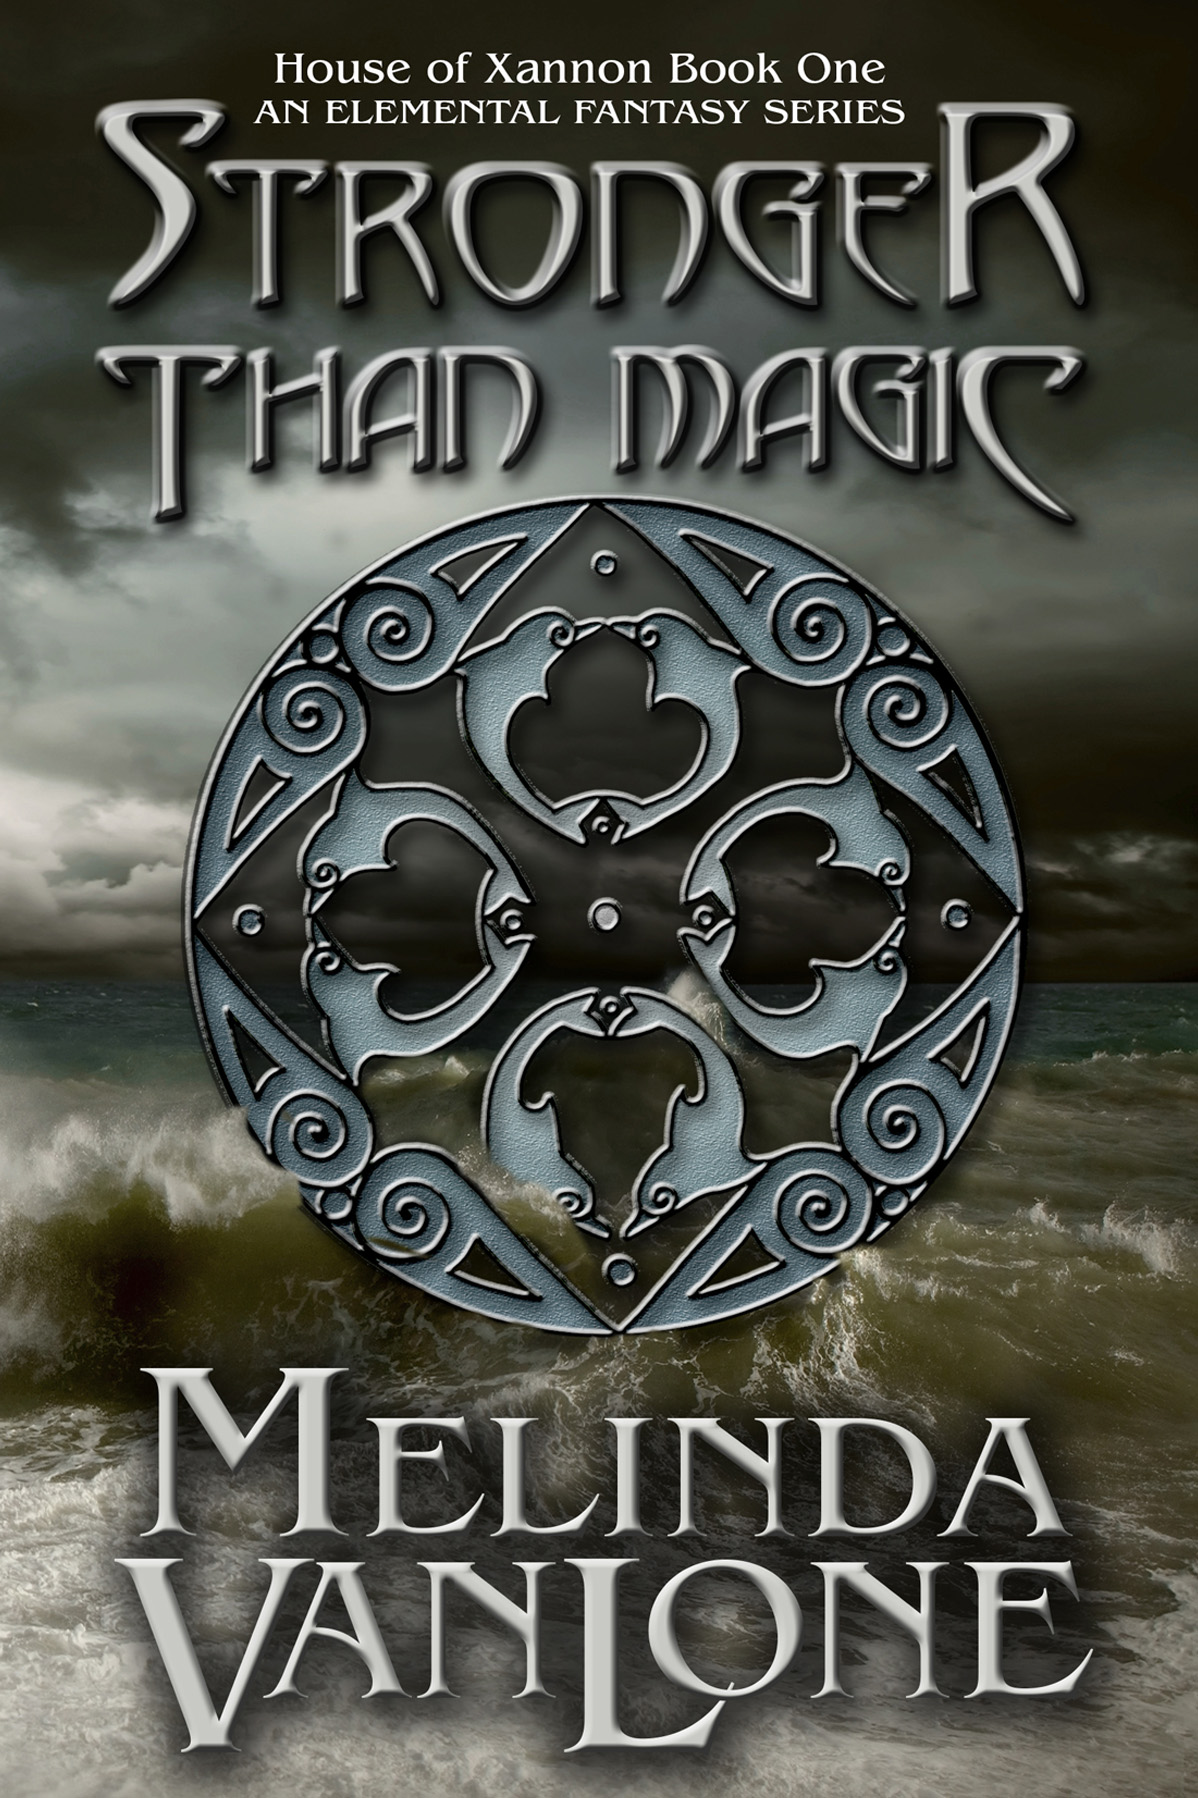 Stronger Than Magic by Melinda Van Lone, cover by Book Cover Corner